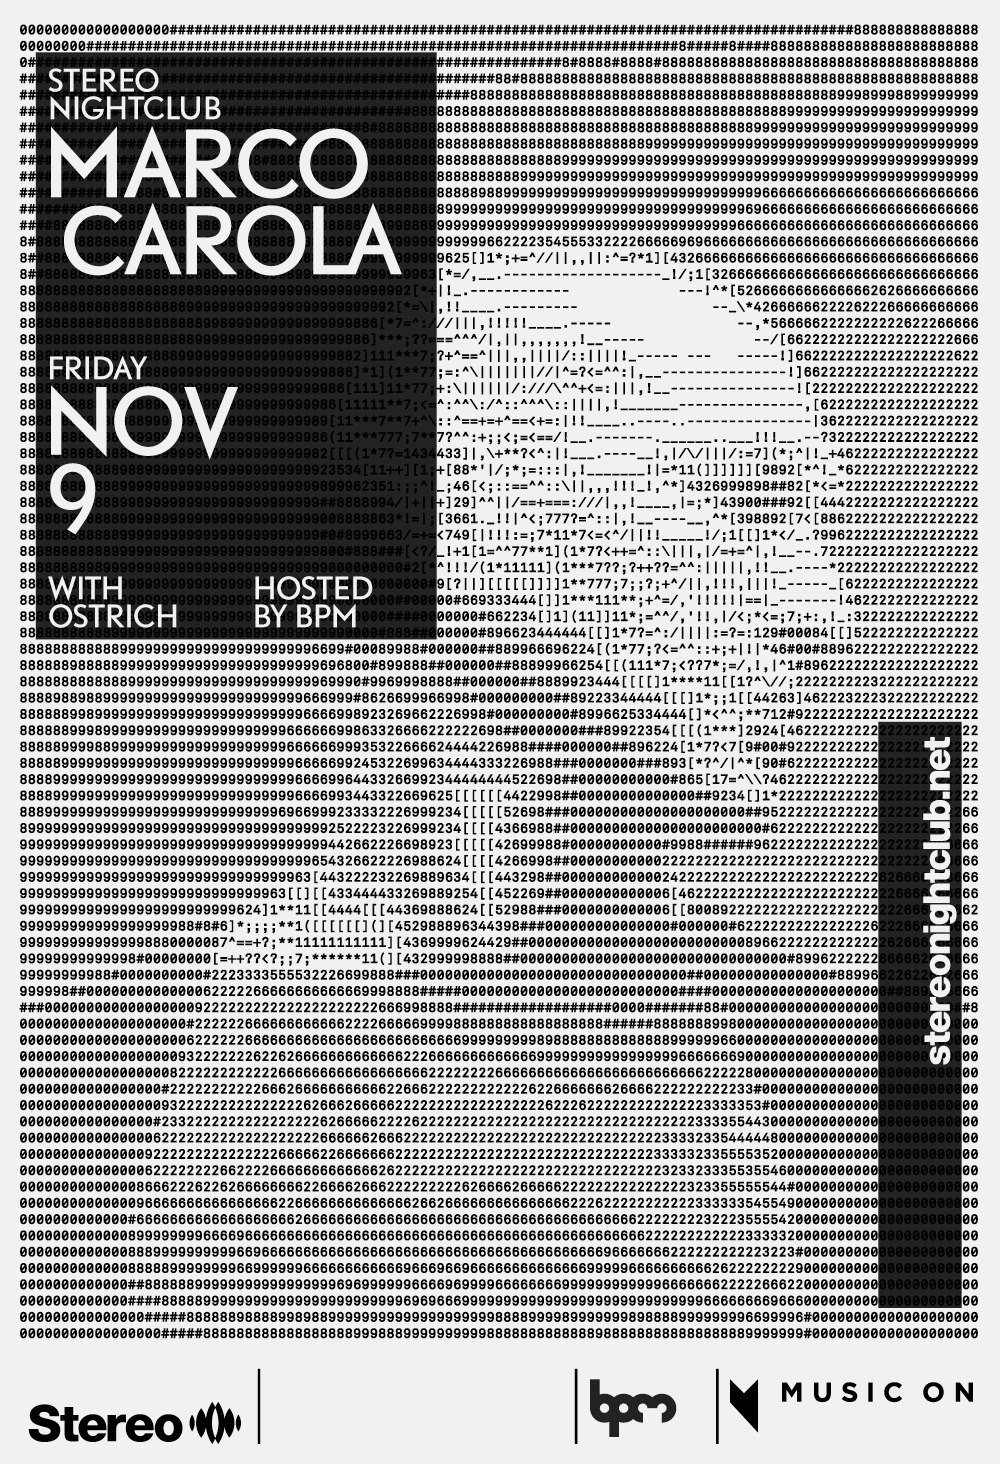 Marco Carola Ostrich Stereo Montreal